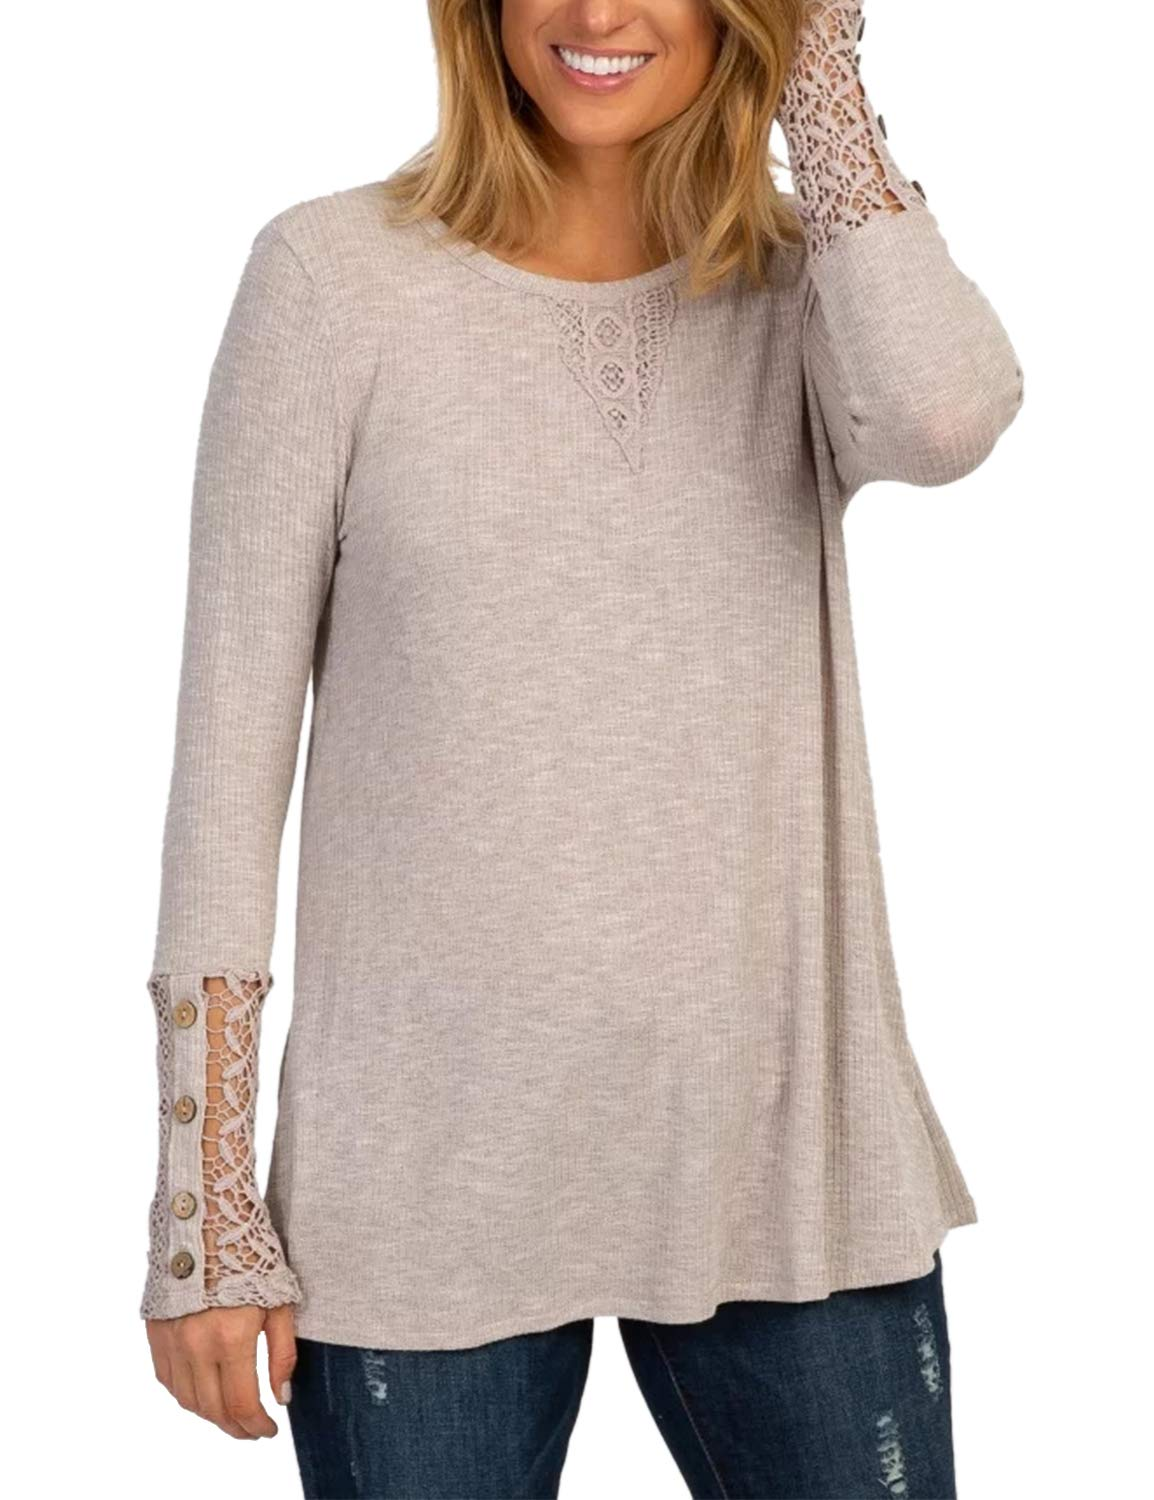 BMJL Women's Round Neck Long Sleeve T Shirt Soft Blouse Buttoned Lace Tops